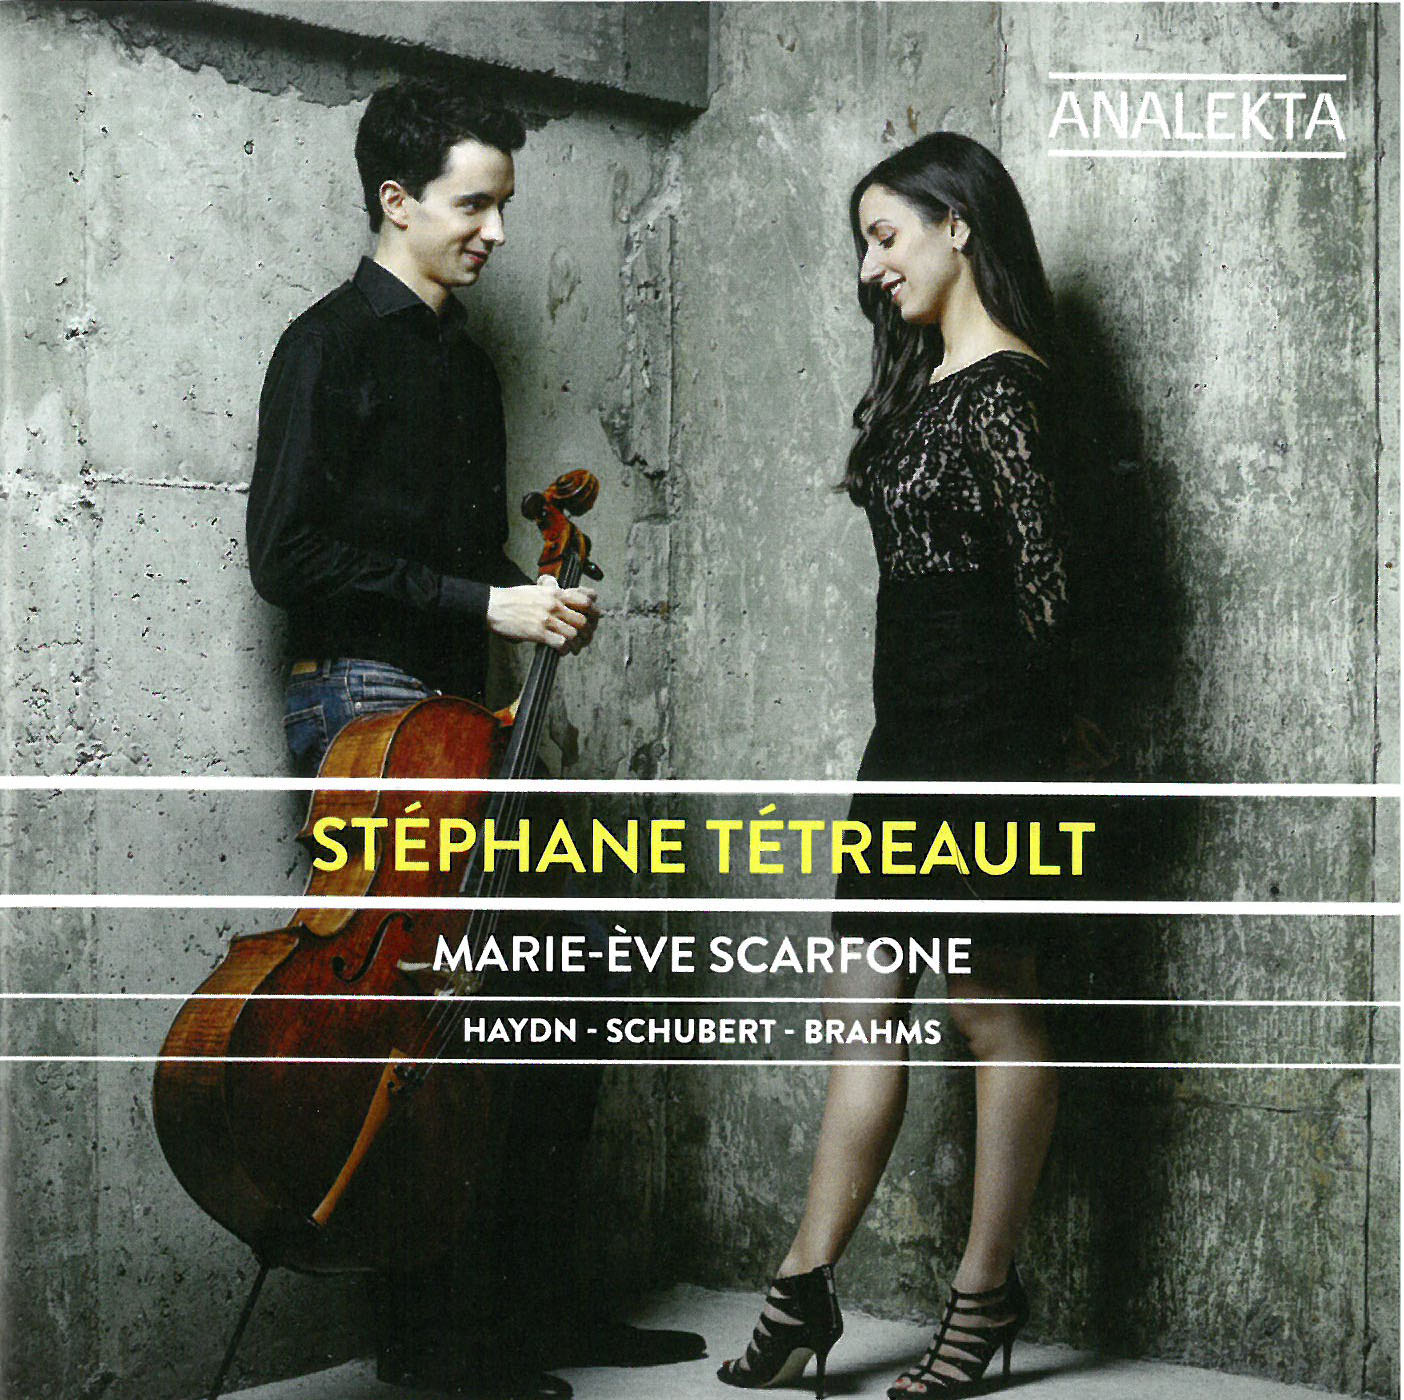 Haydn schubert brahms st phane t trault marie ve scarfone the wholenote - Stephane marie jardinier ...